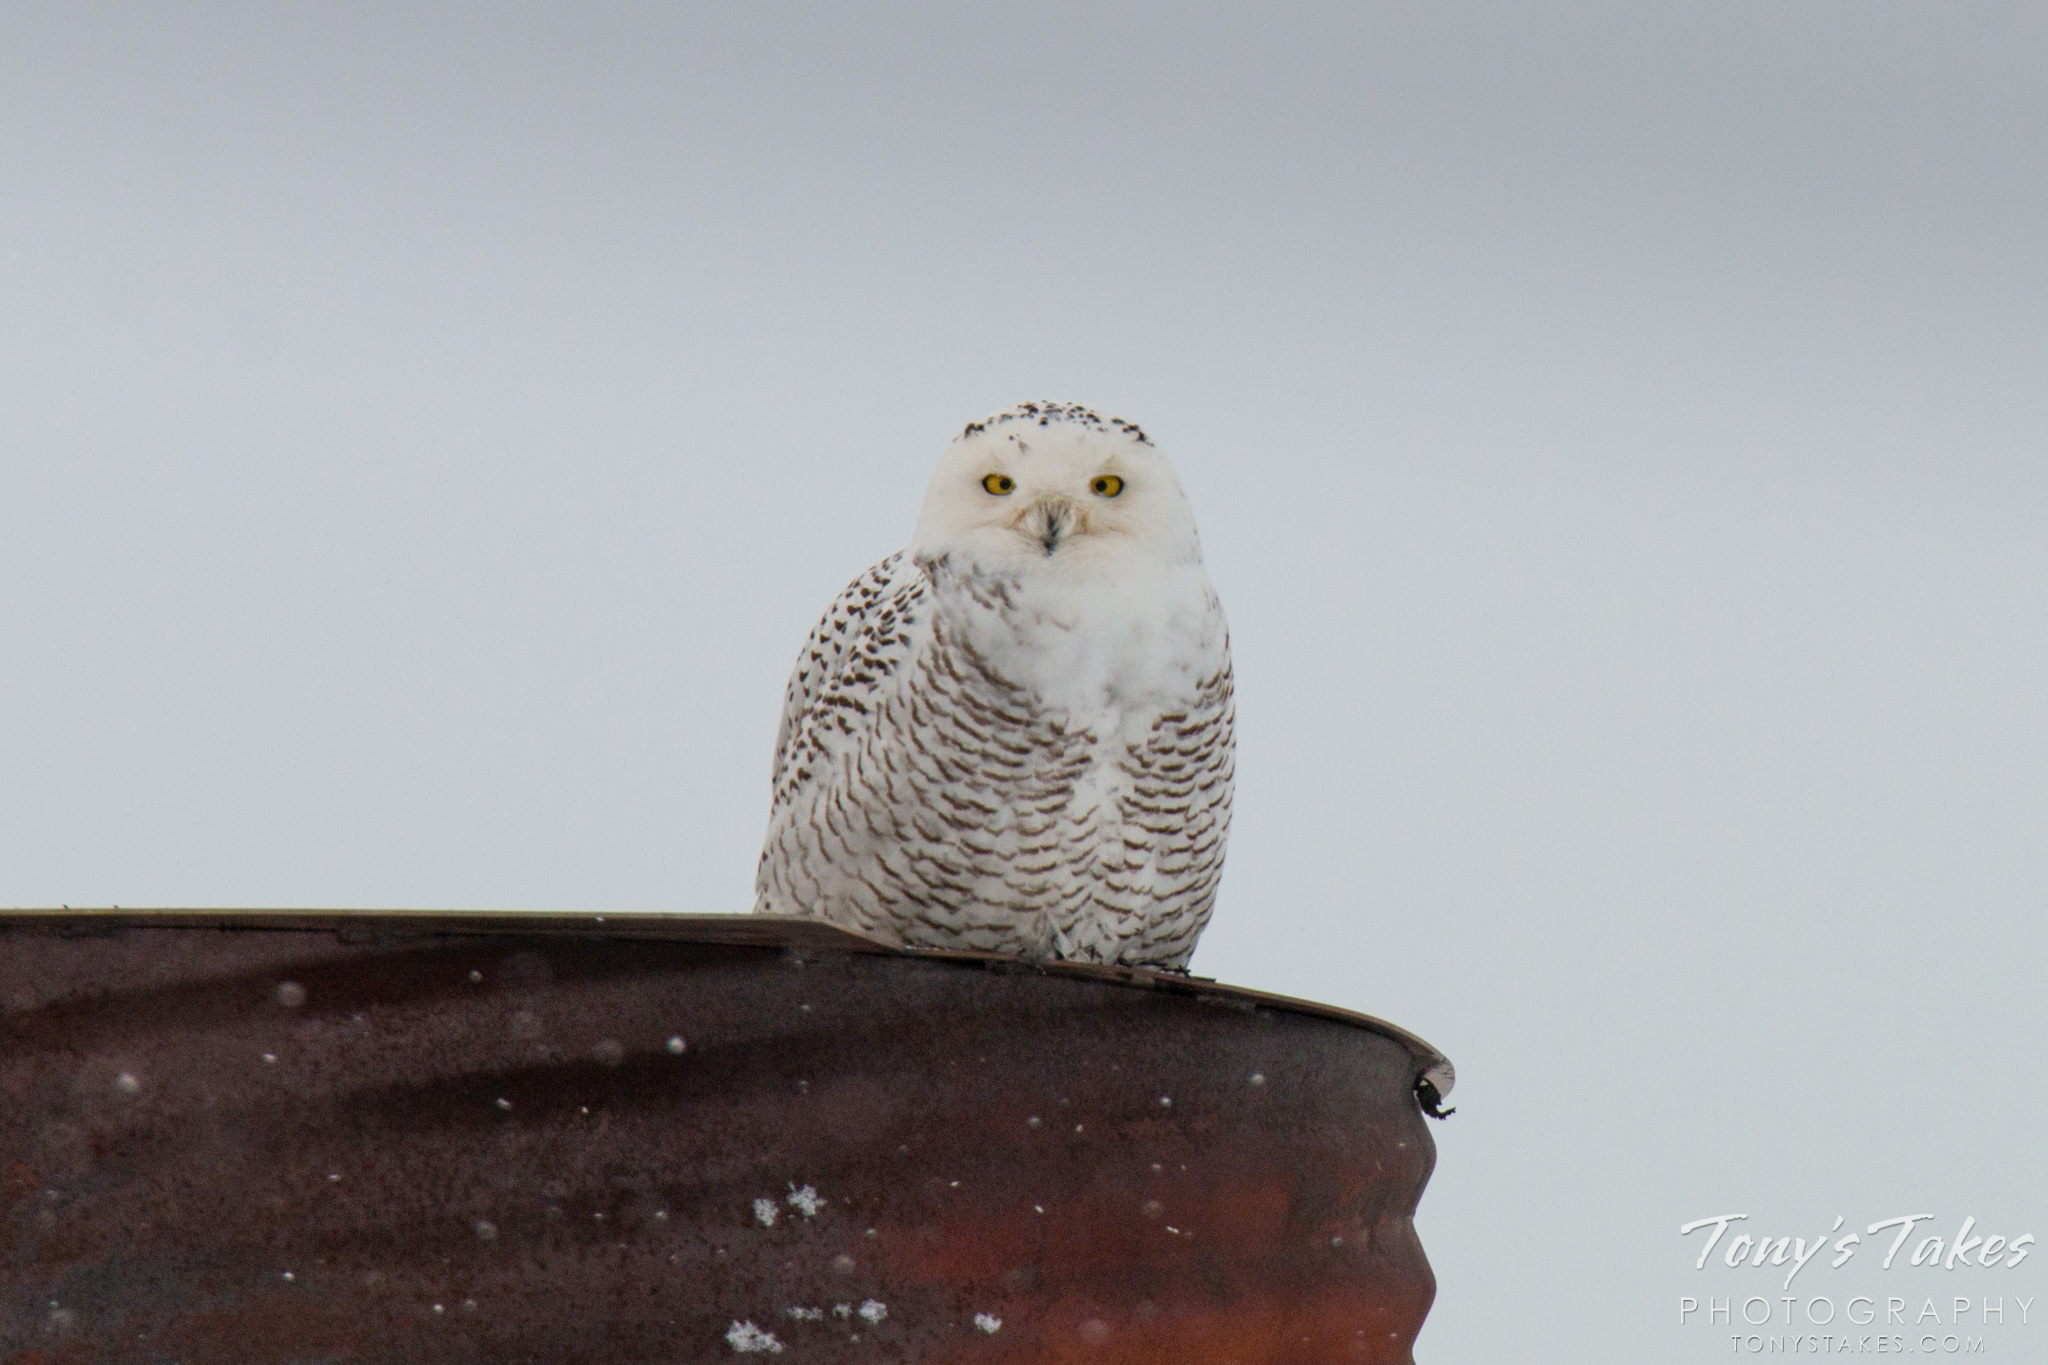 Snowy Owl makes an incredibly rare appearance